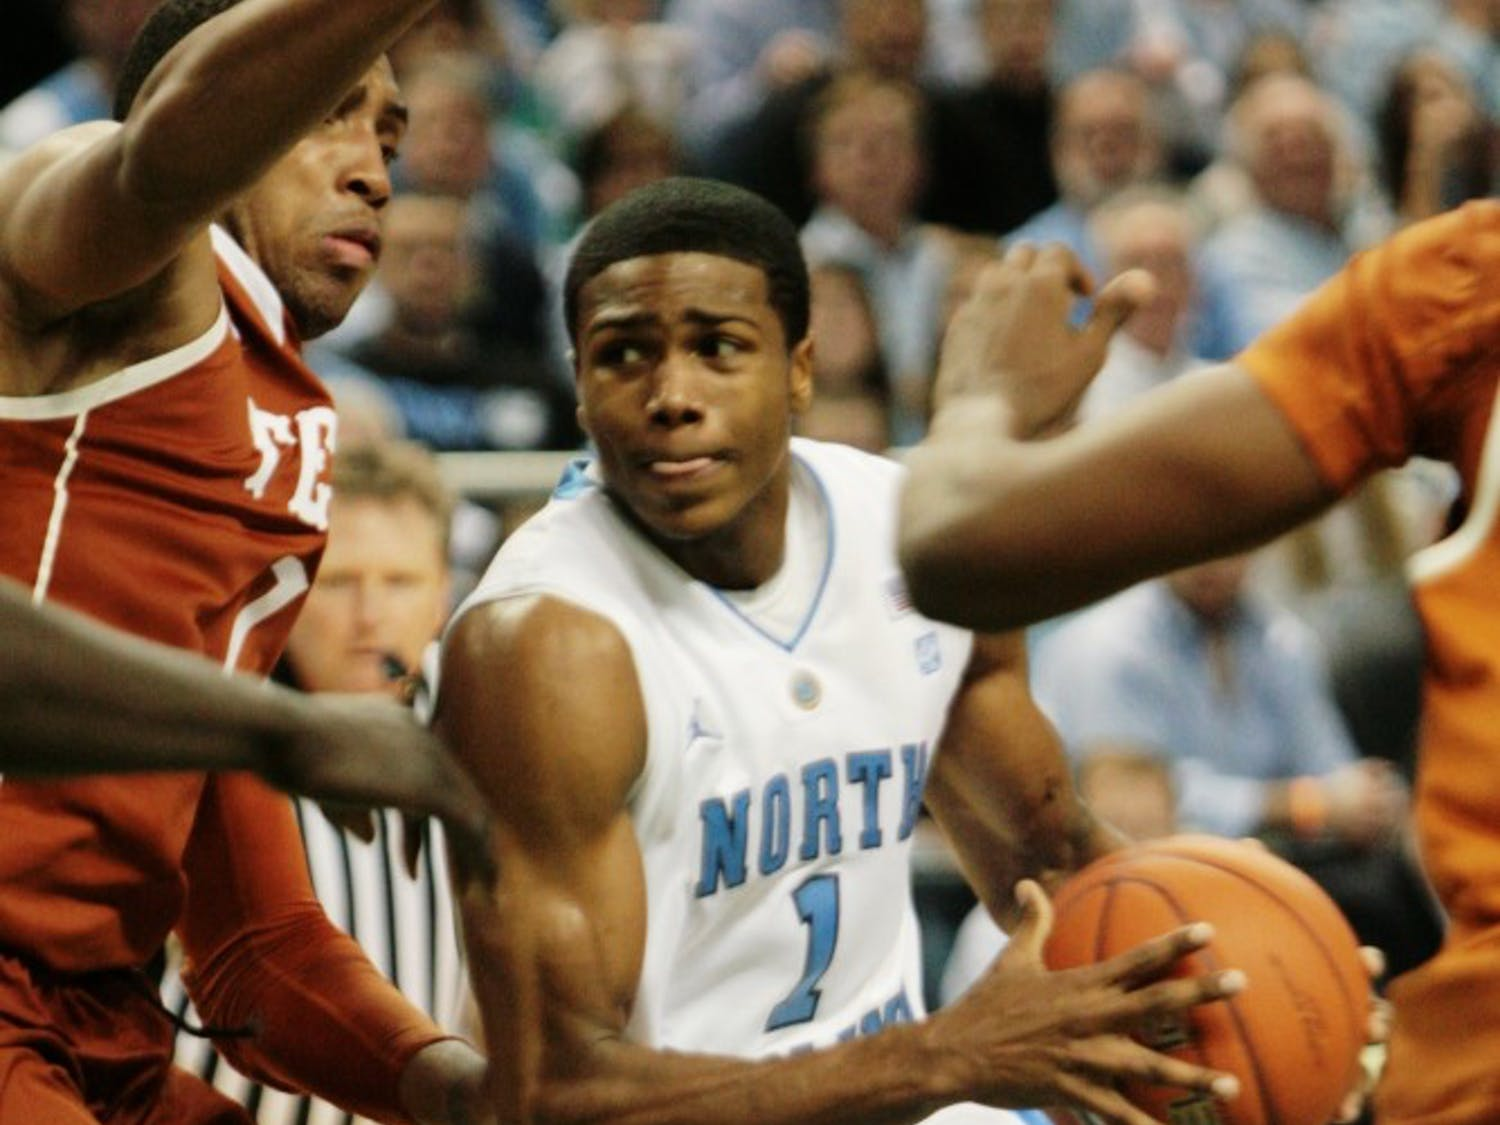 Dexter Strickland scored a team-high 18 points and dished out three assists in UNC's loss to Texas on Saturday in Greensboro.